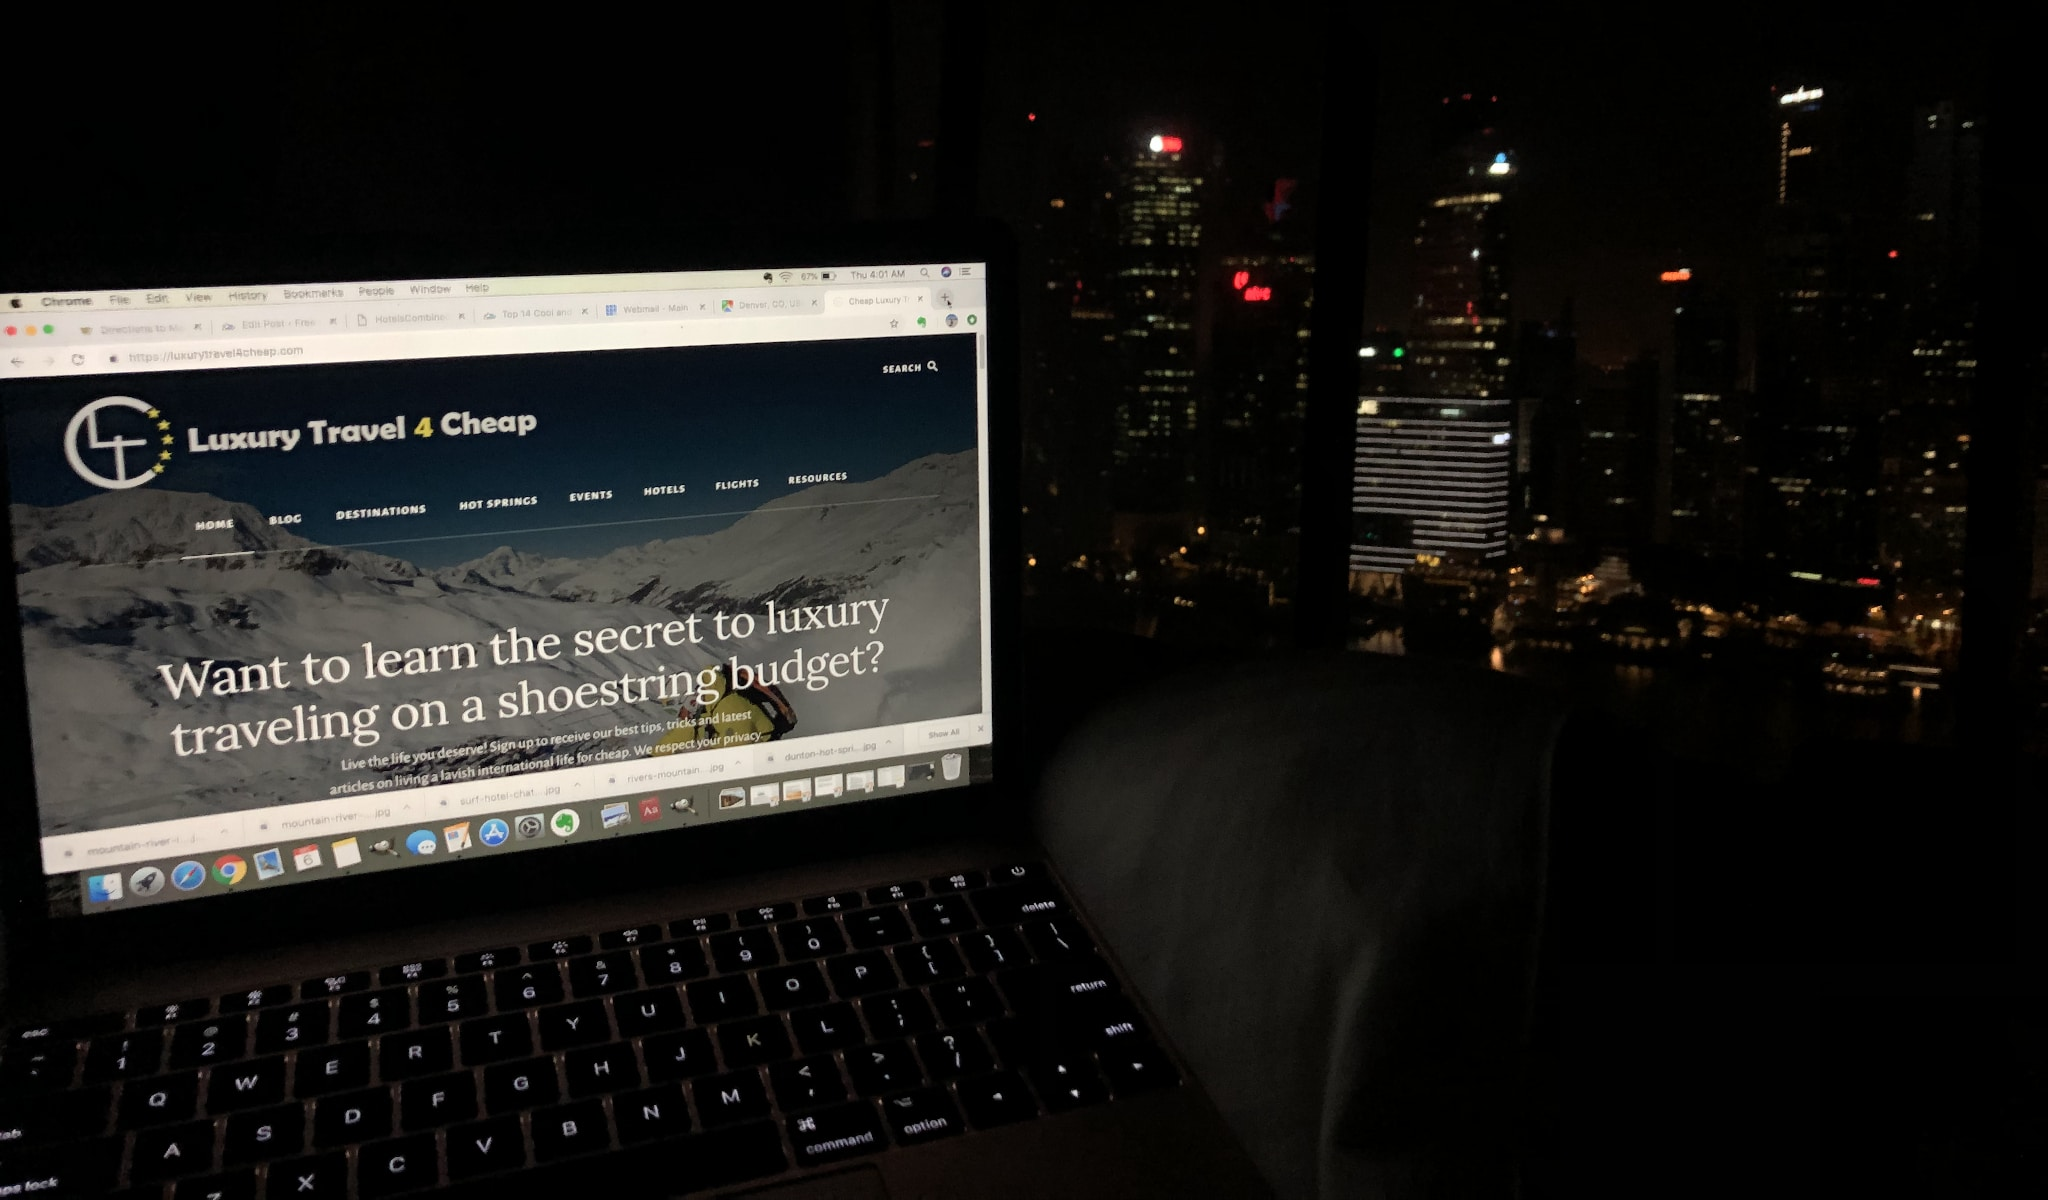 Luxury Travel 4 Cheap Website Working at Singapore Marina Bay Sands Room